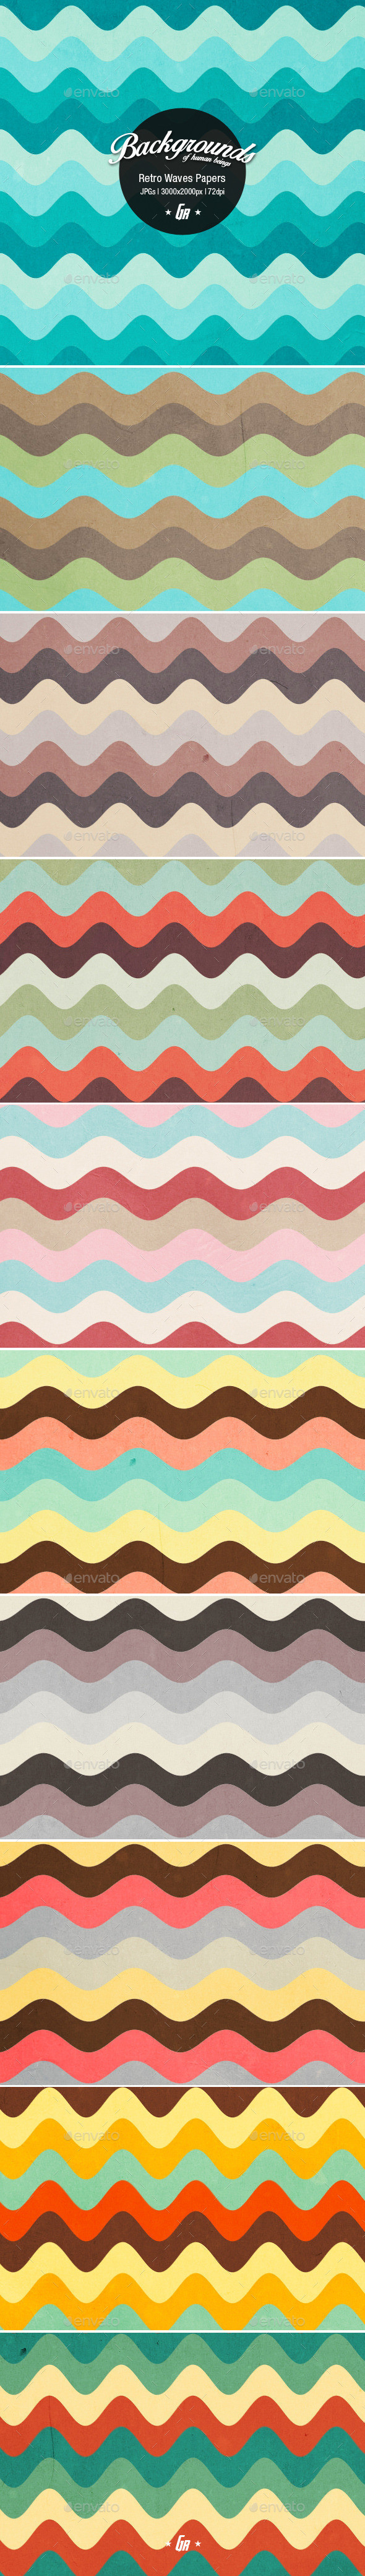 Retro waves paper backgrounds preview